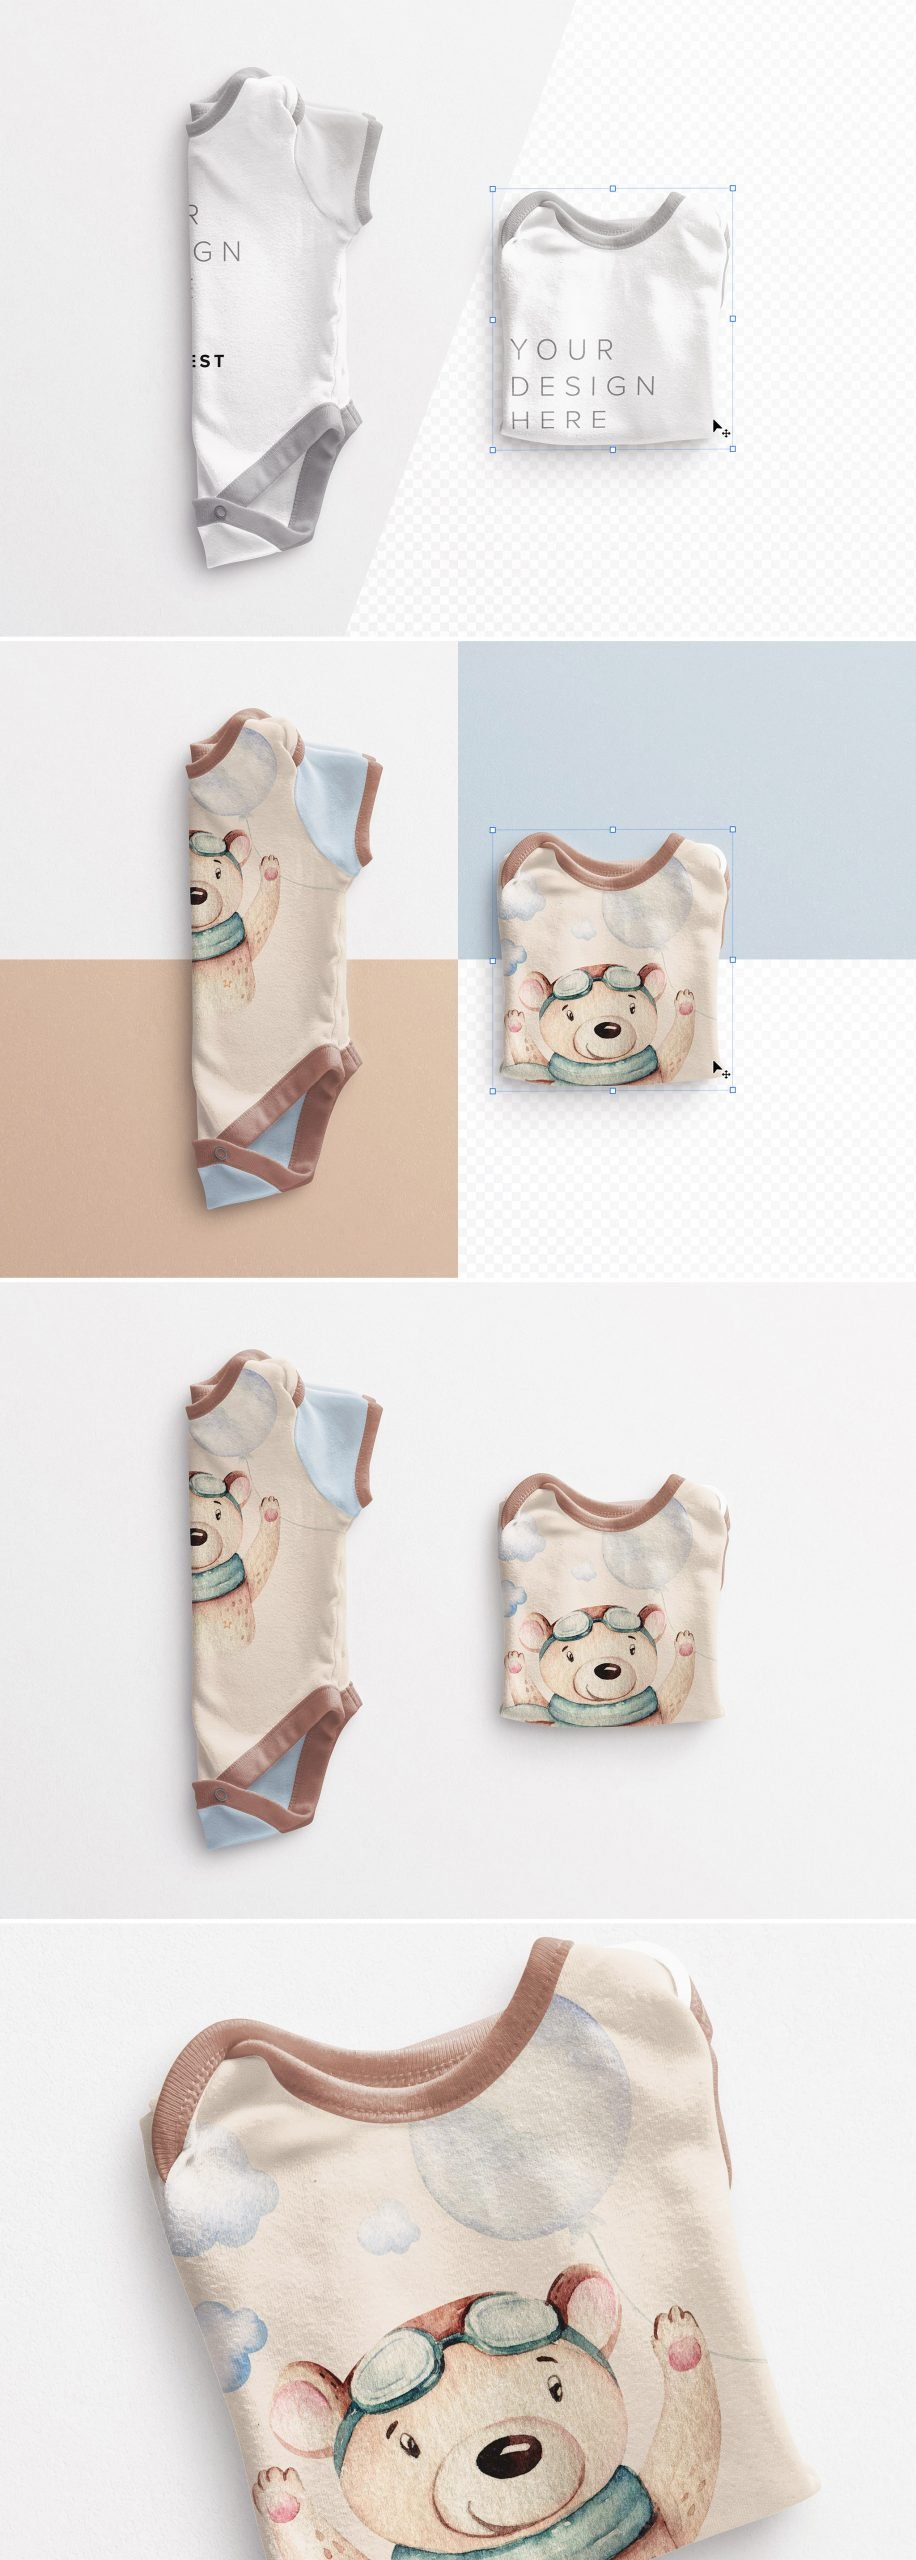 Baby Vest Folded Mockup Preview scaled